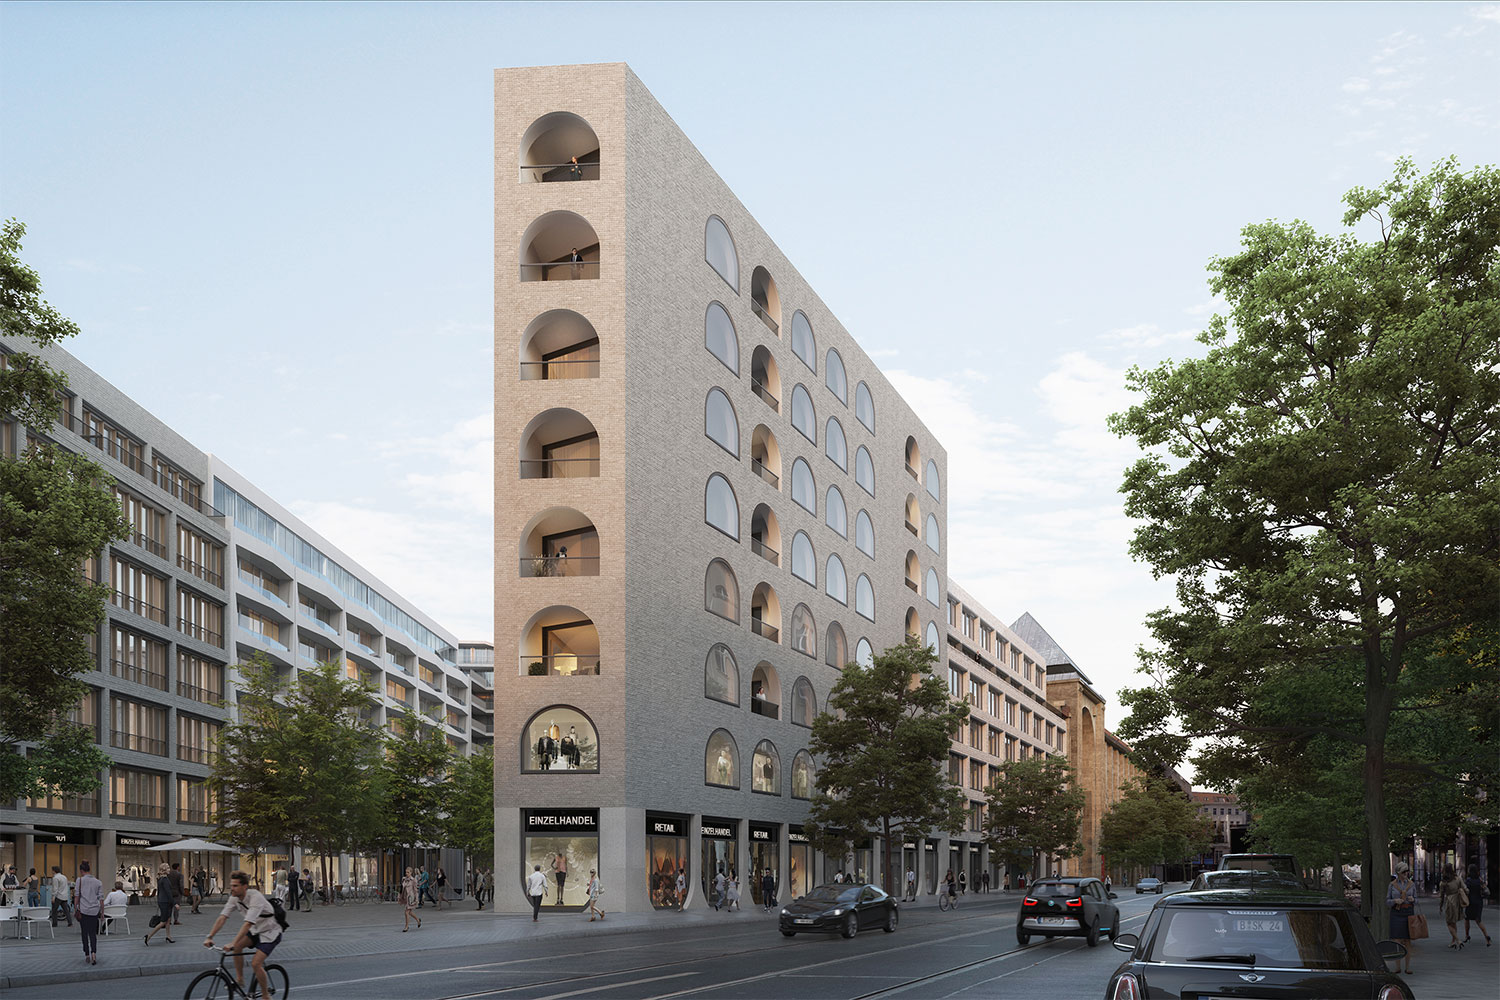 Street view of corner building in new Am Tacheles